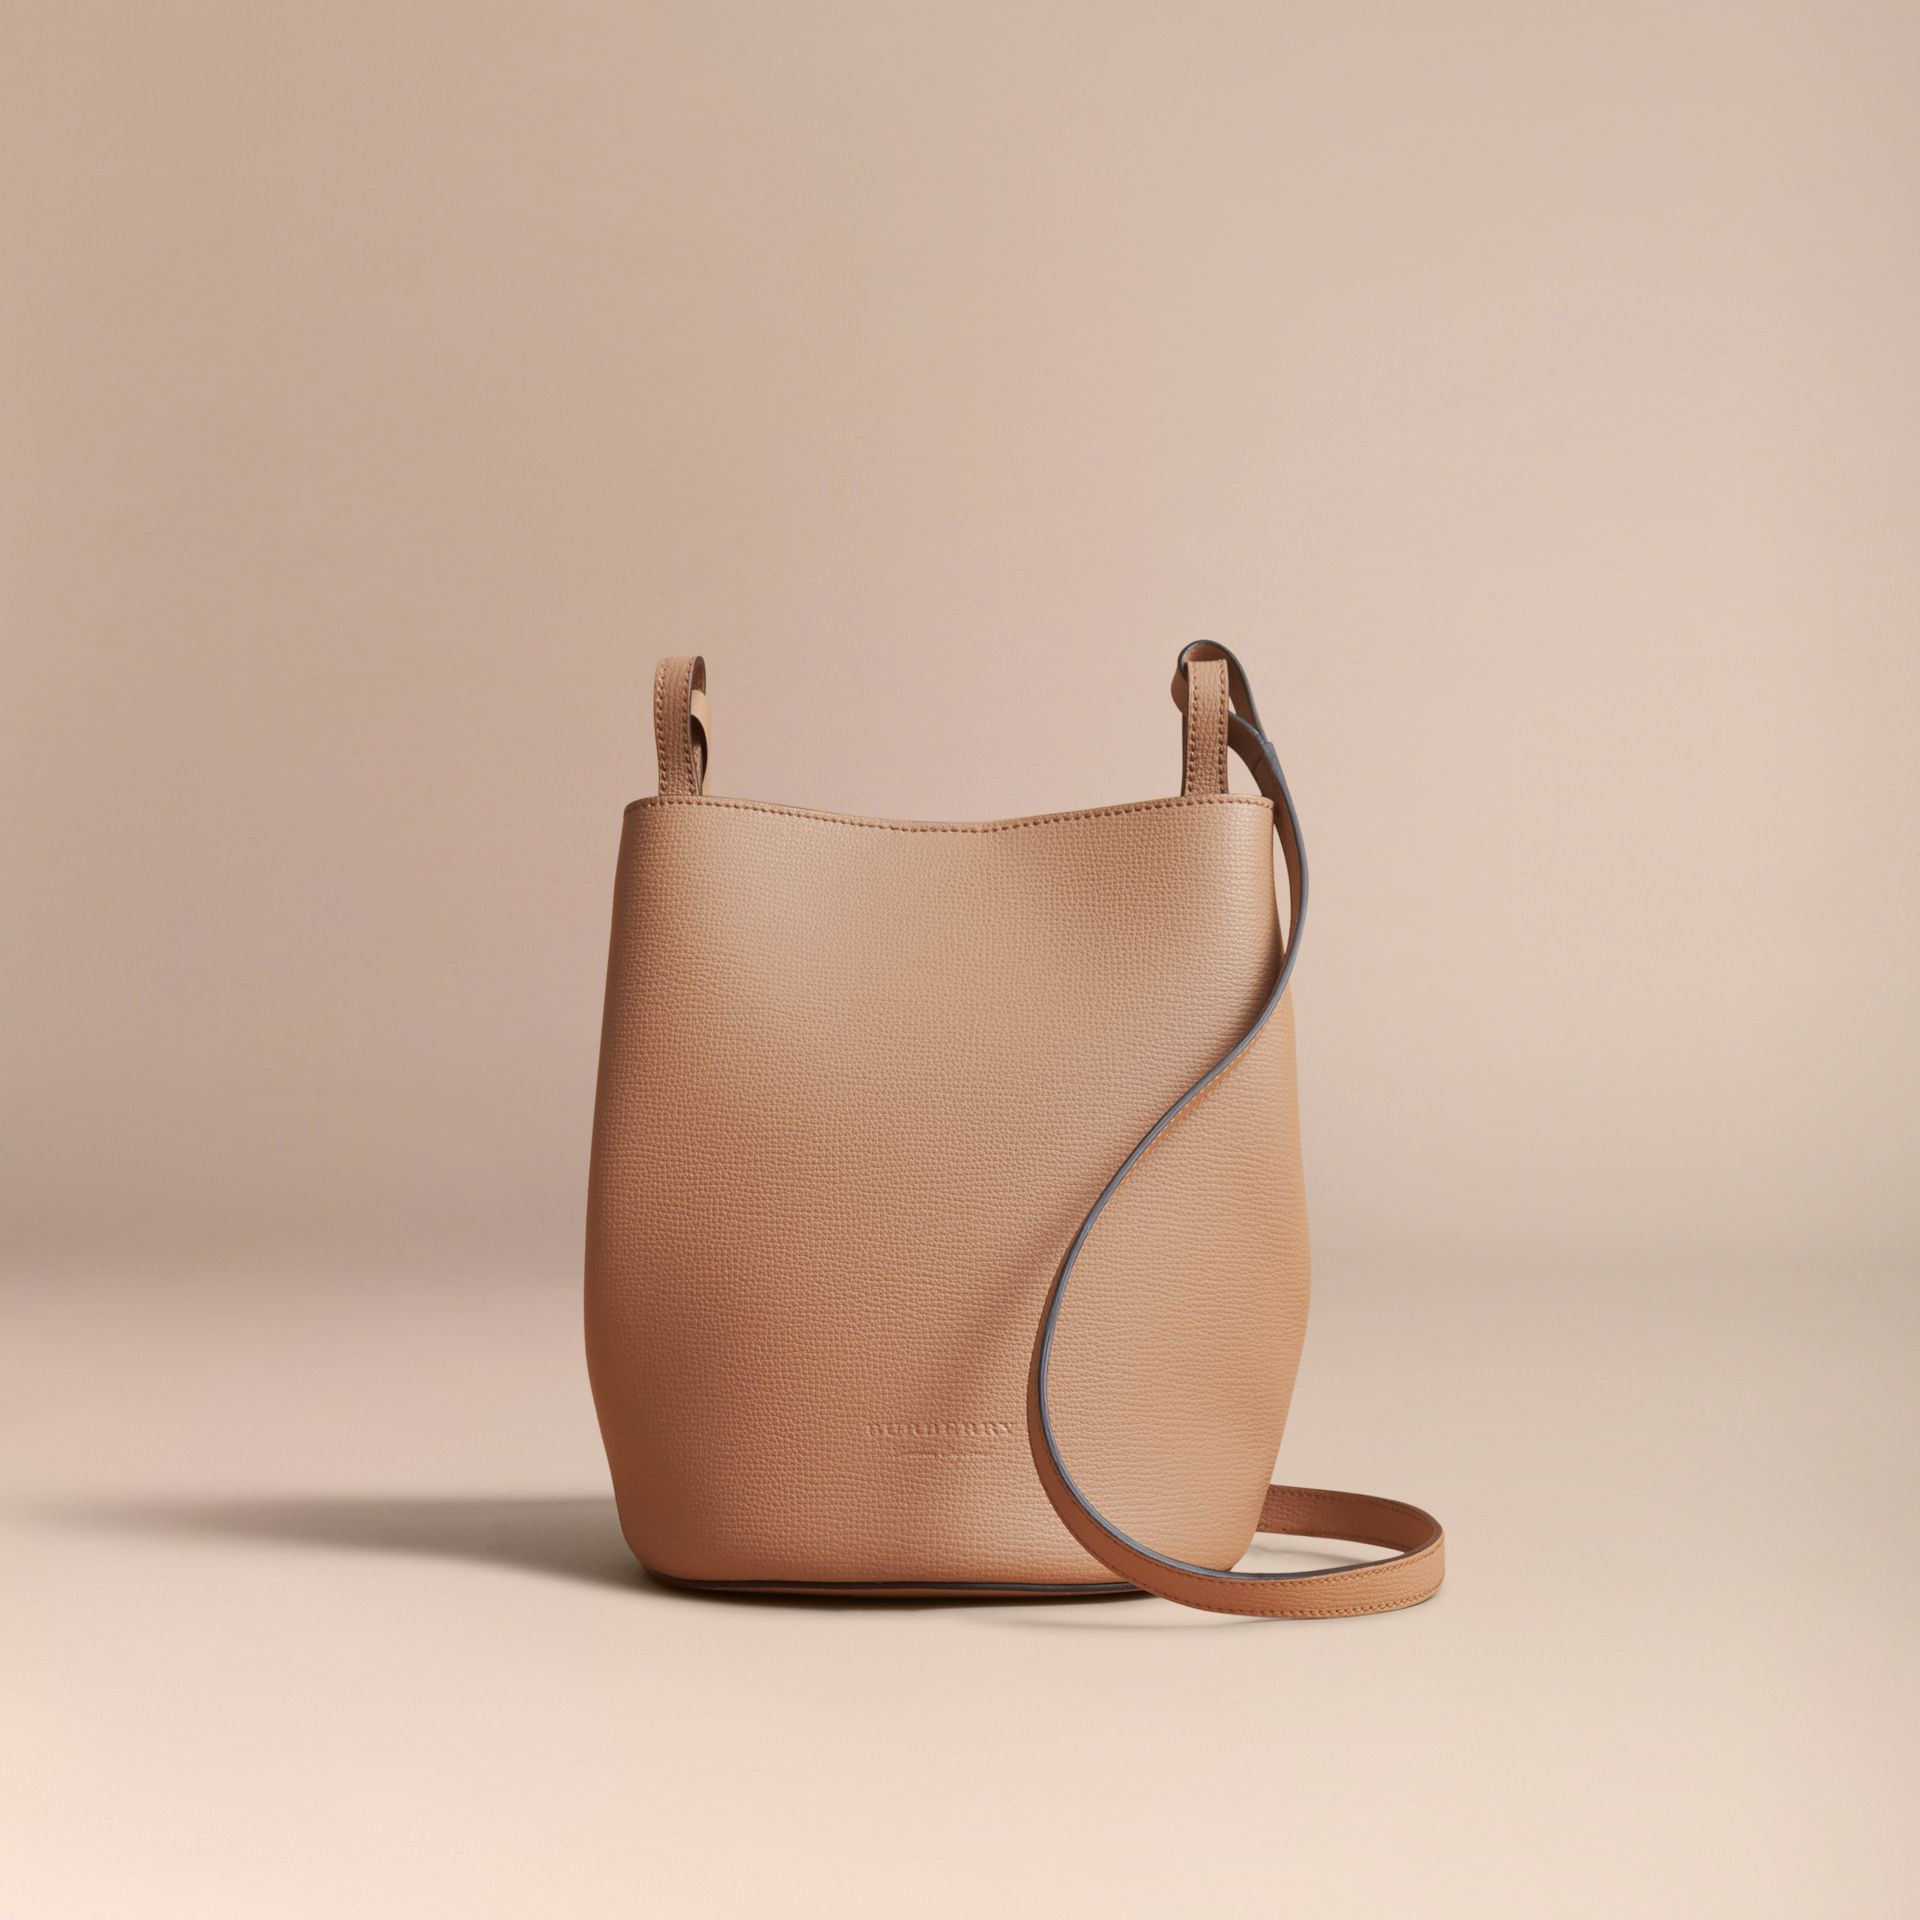 Leather and Haymarket Check Crossbody Bucket Bag in Mid Camel - Women | Burberry United Kingdom - gallery image 7